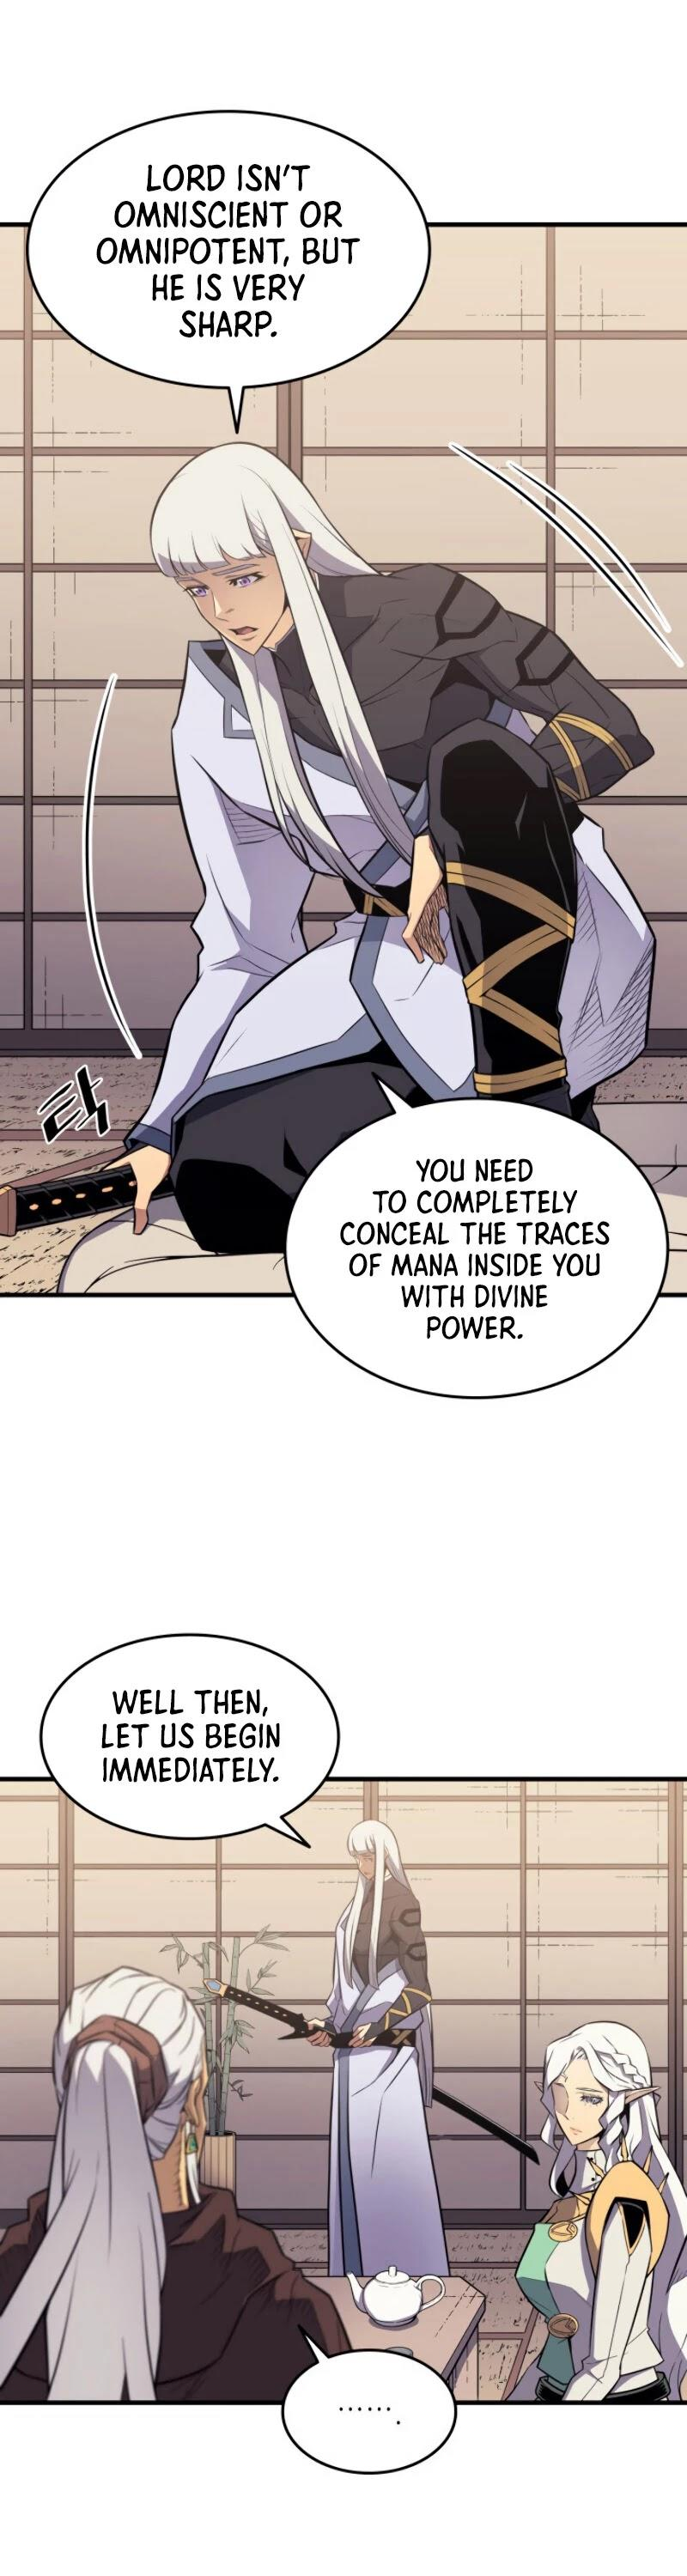 The Great Mage Returns After 4000 Years Chapter 91 page 11 - Mangakakalots.com